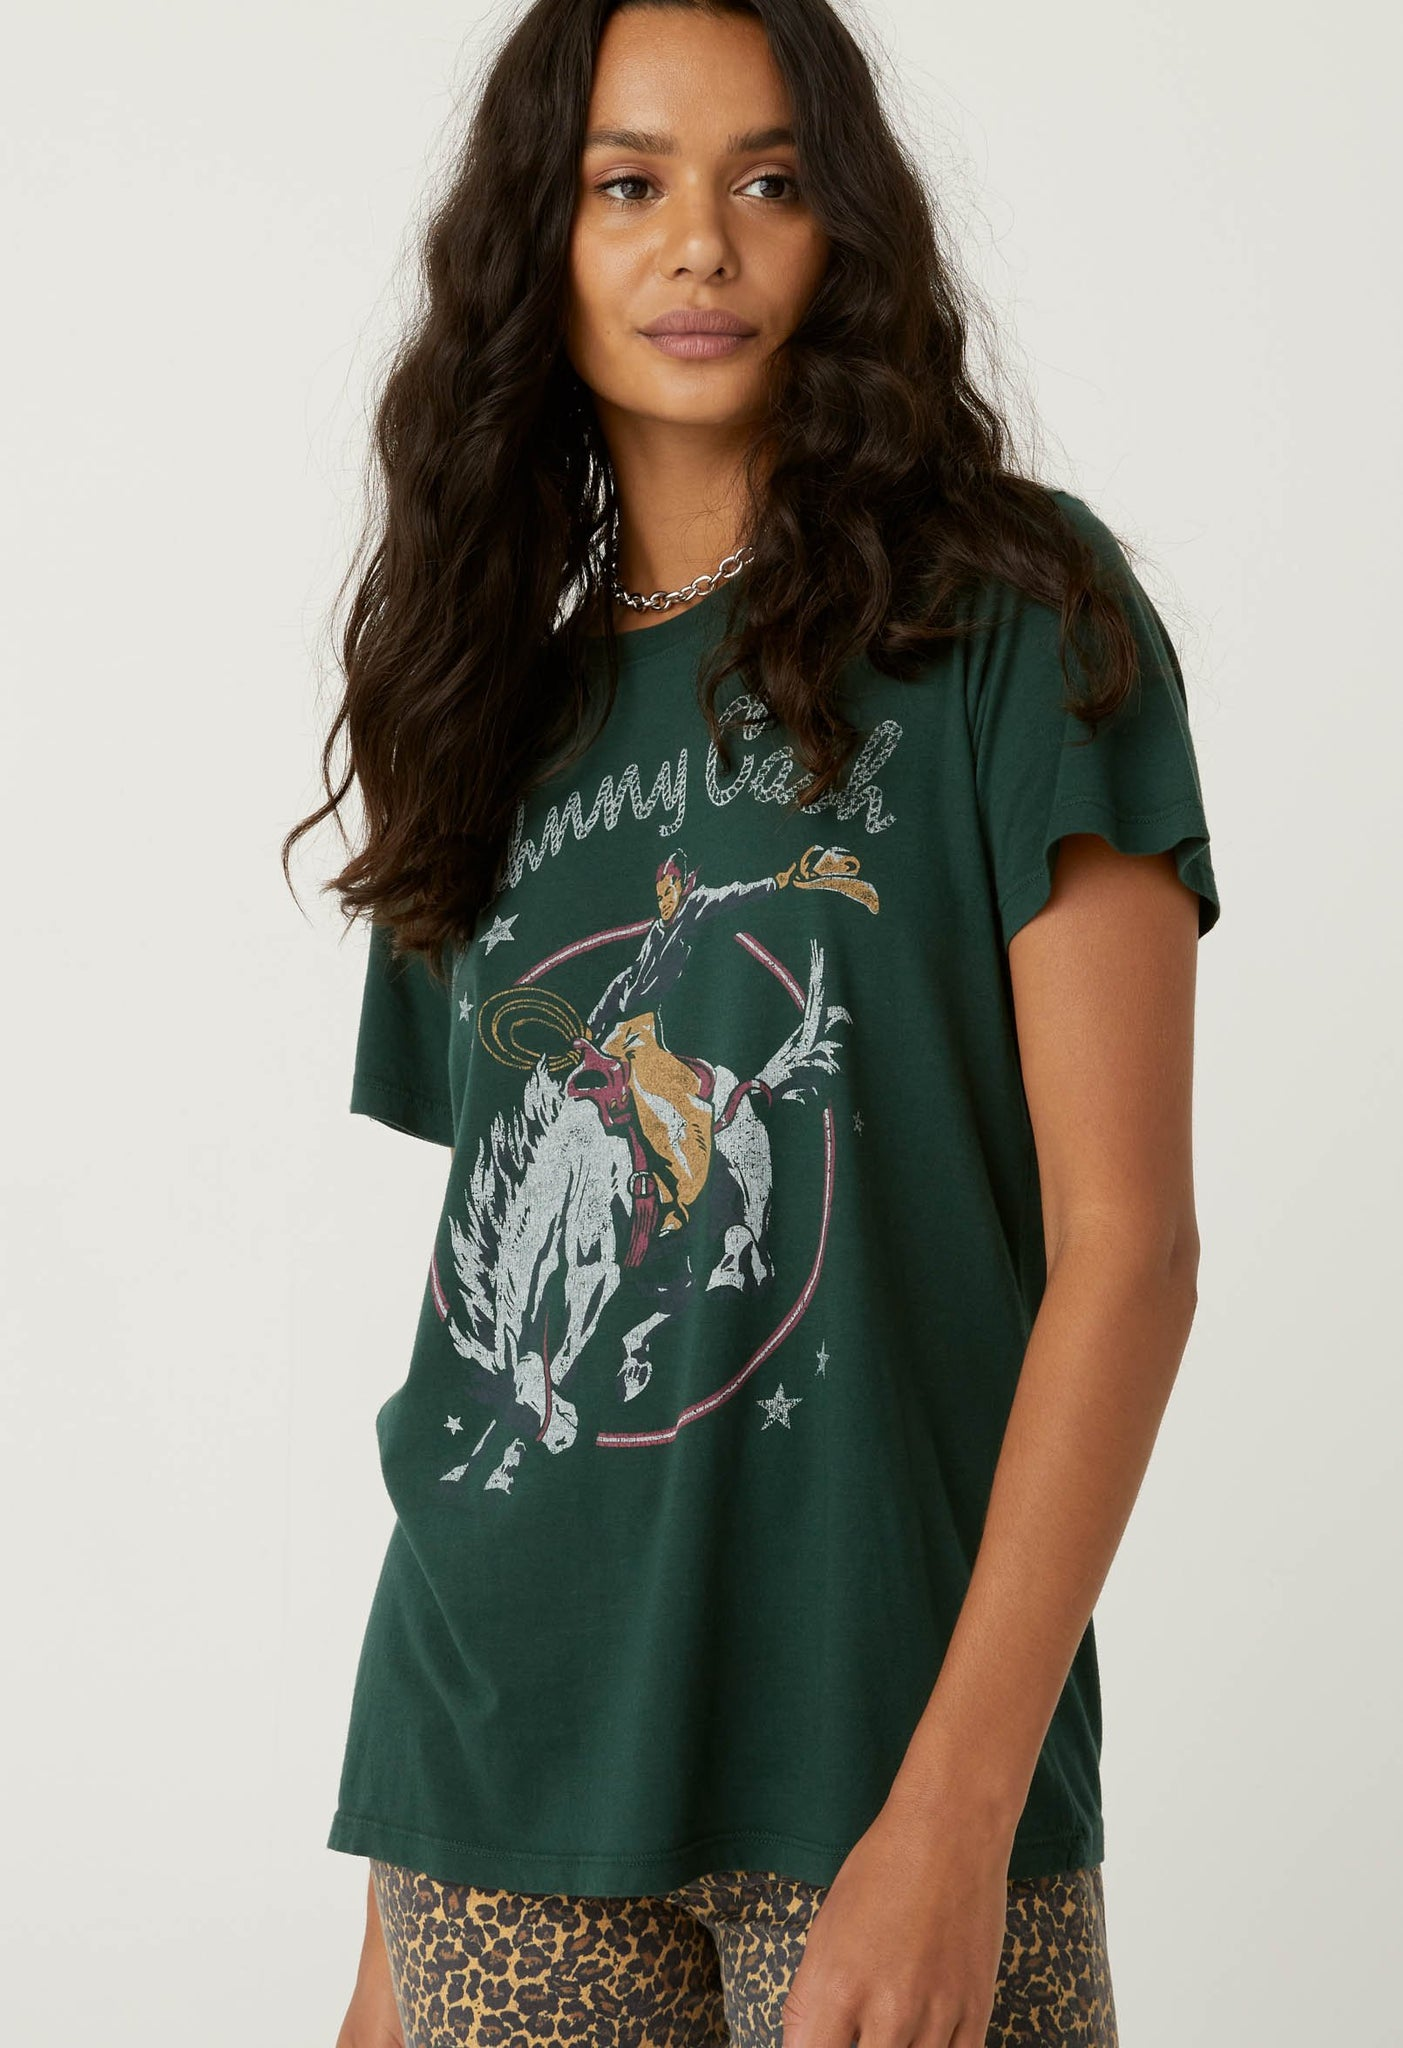 Johnny Cash Rodeo Tee in Emerald